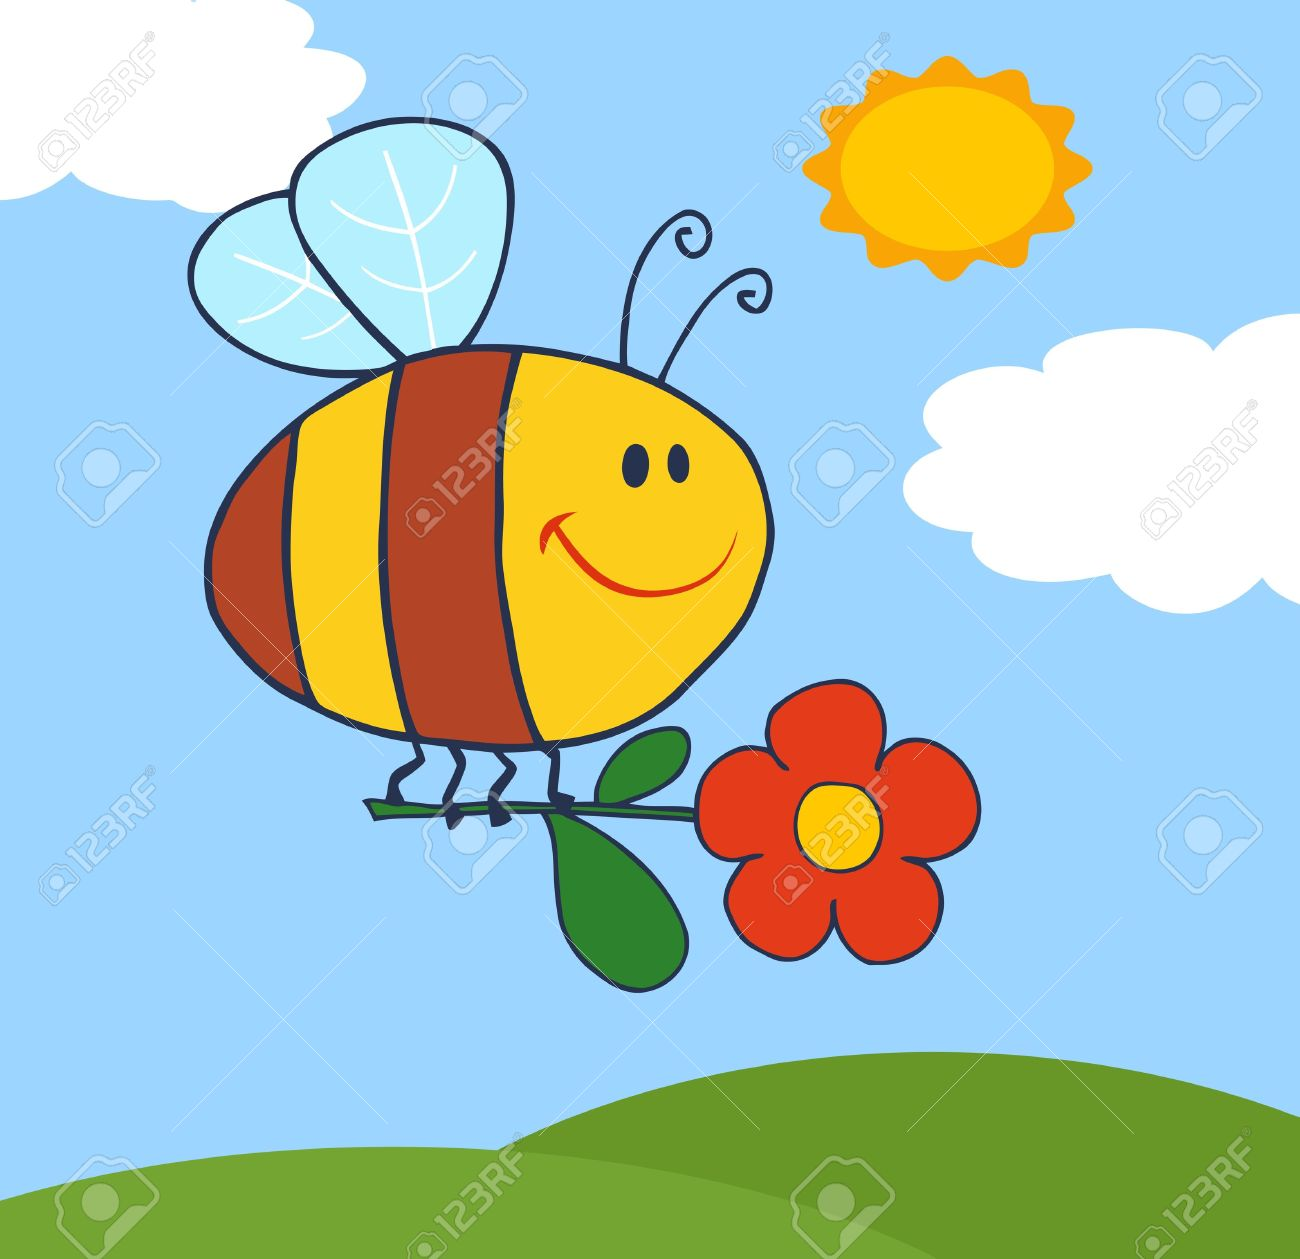 Happy Bee Flying With Flower In Sky Royalty Free Cliparts, Vectors.